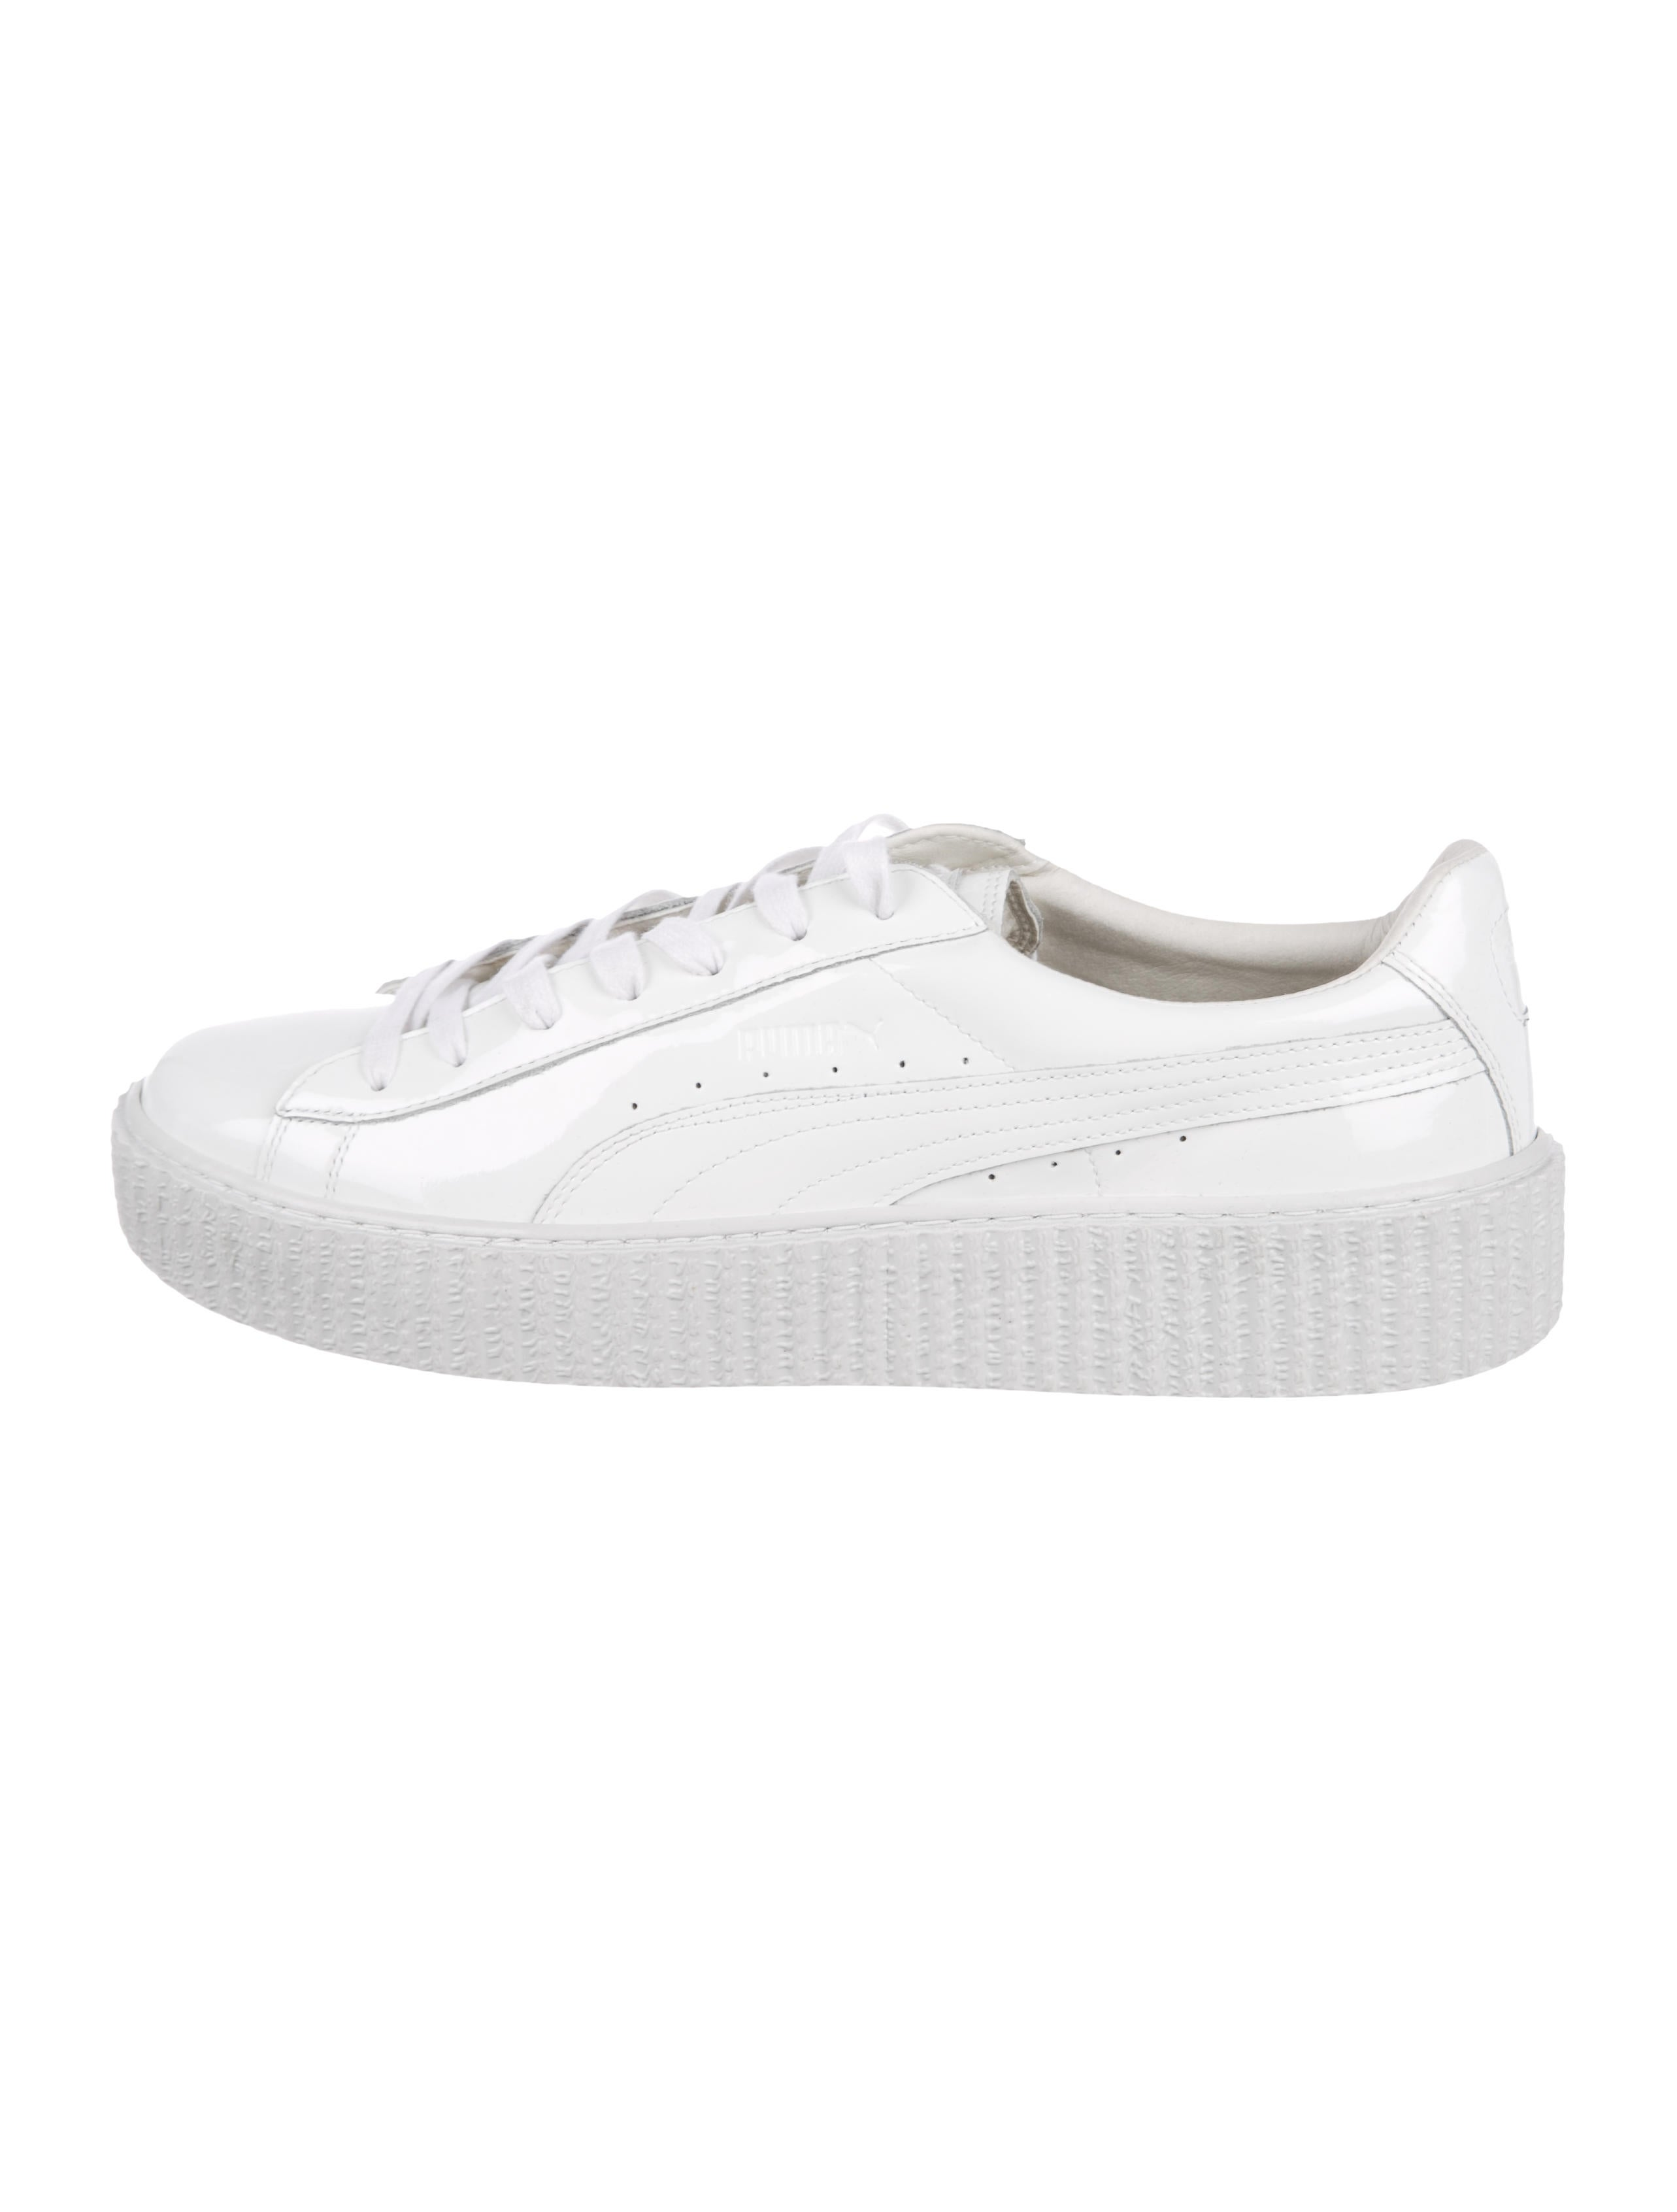 07802071112 Fenty x Puma Basket Creepers Sneakers w  Tags - Shoes - WPMFY20742 ...